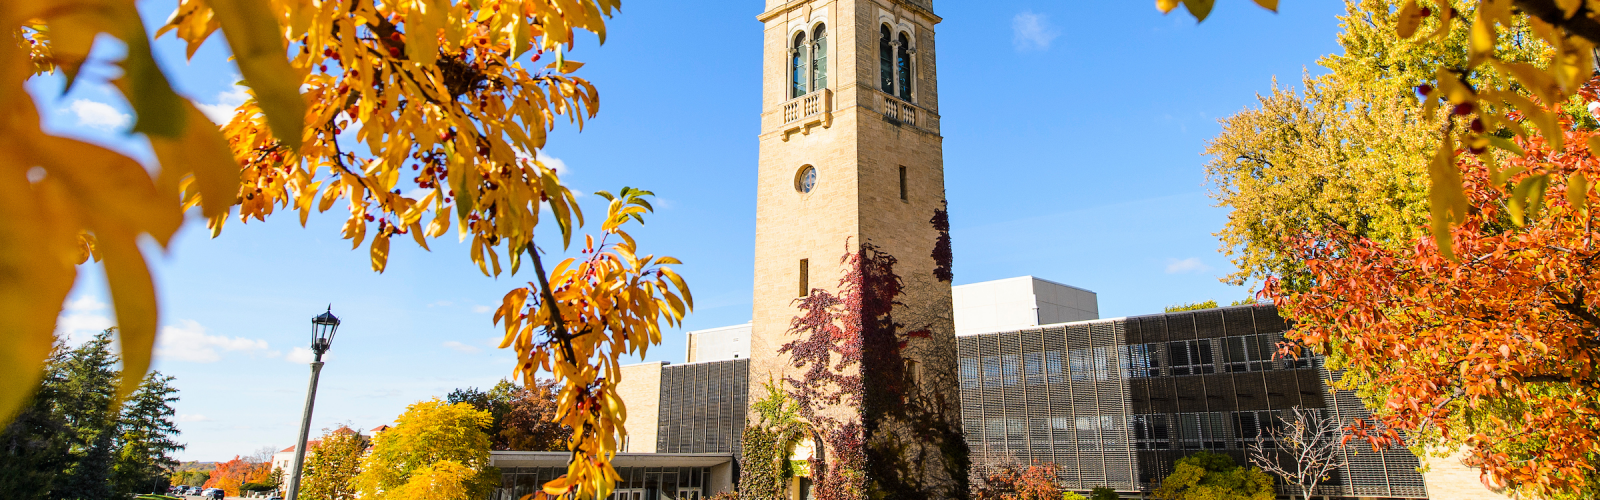 Carillon Tower in fall